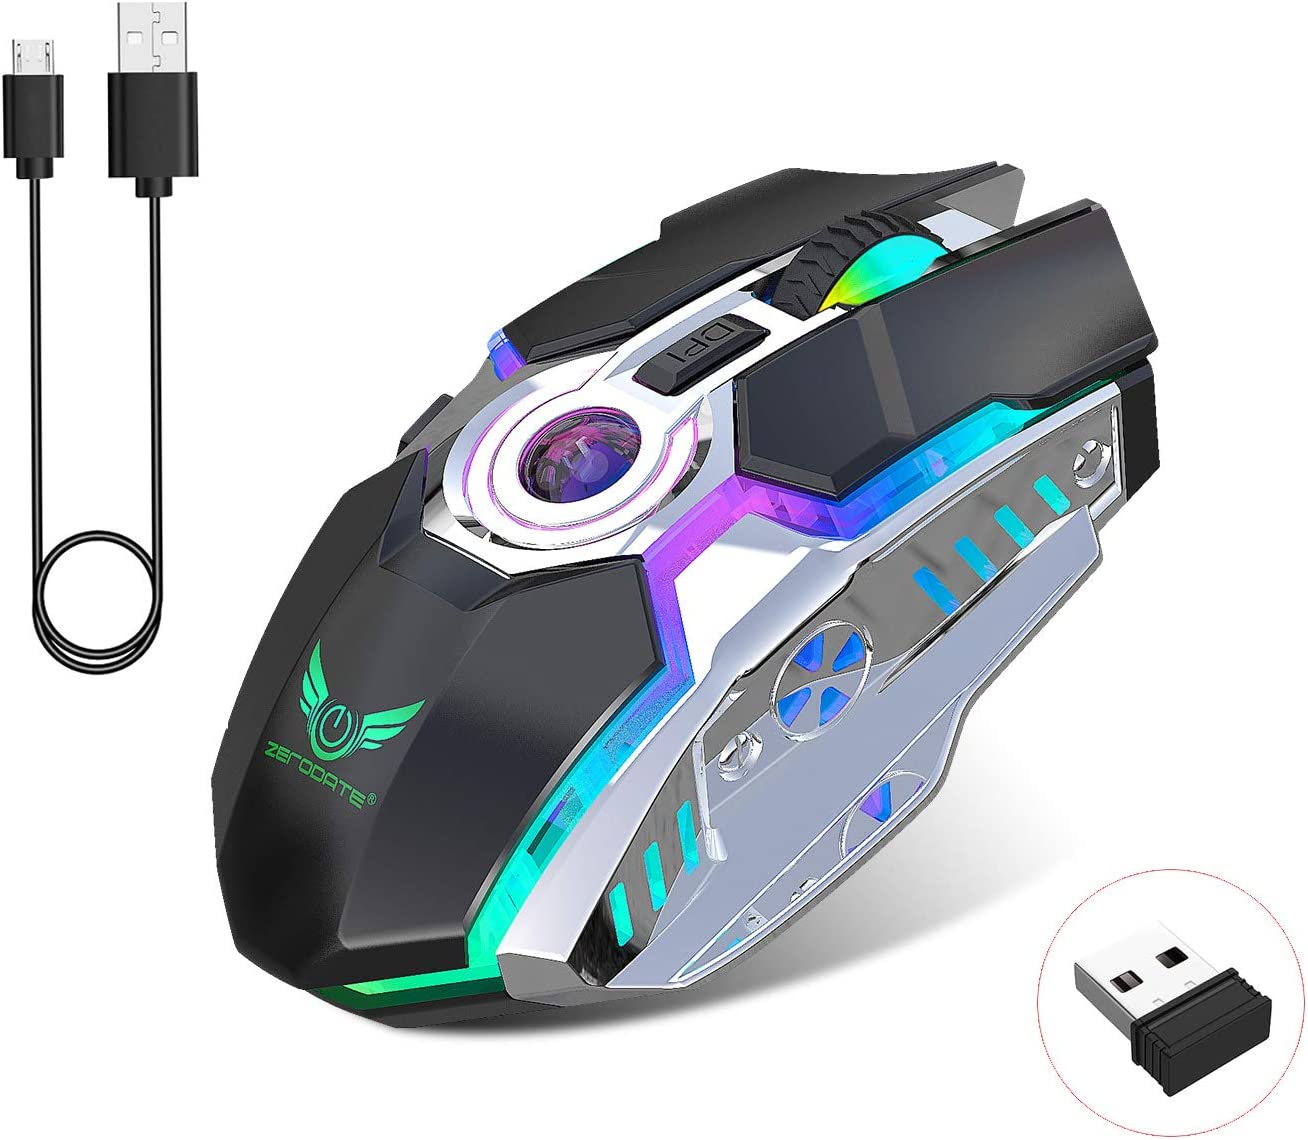 Rechargeable 2.4G Wireless Gaming Mice with USB Receiver and RGB Colors Backlit for Laptop,Computer PC and MacBook (600 Mah Lithium Battery)- Black